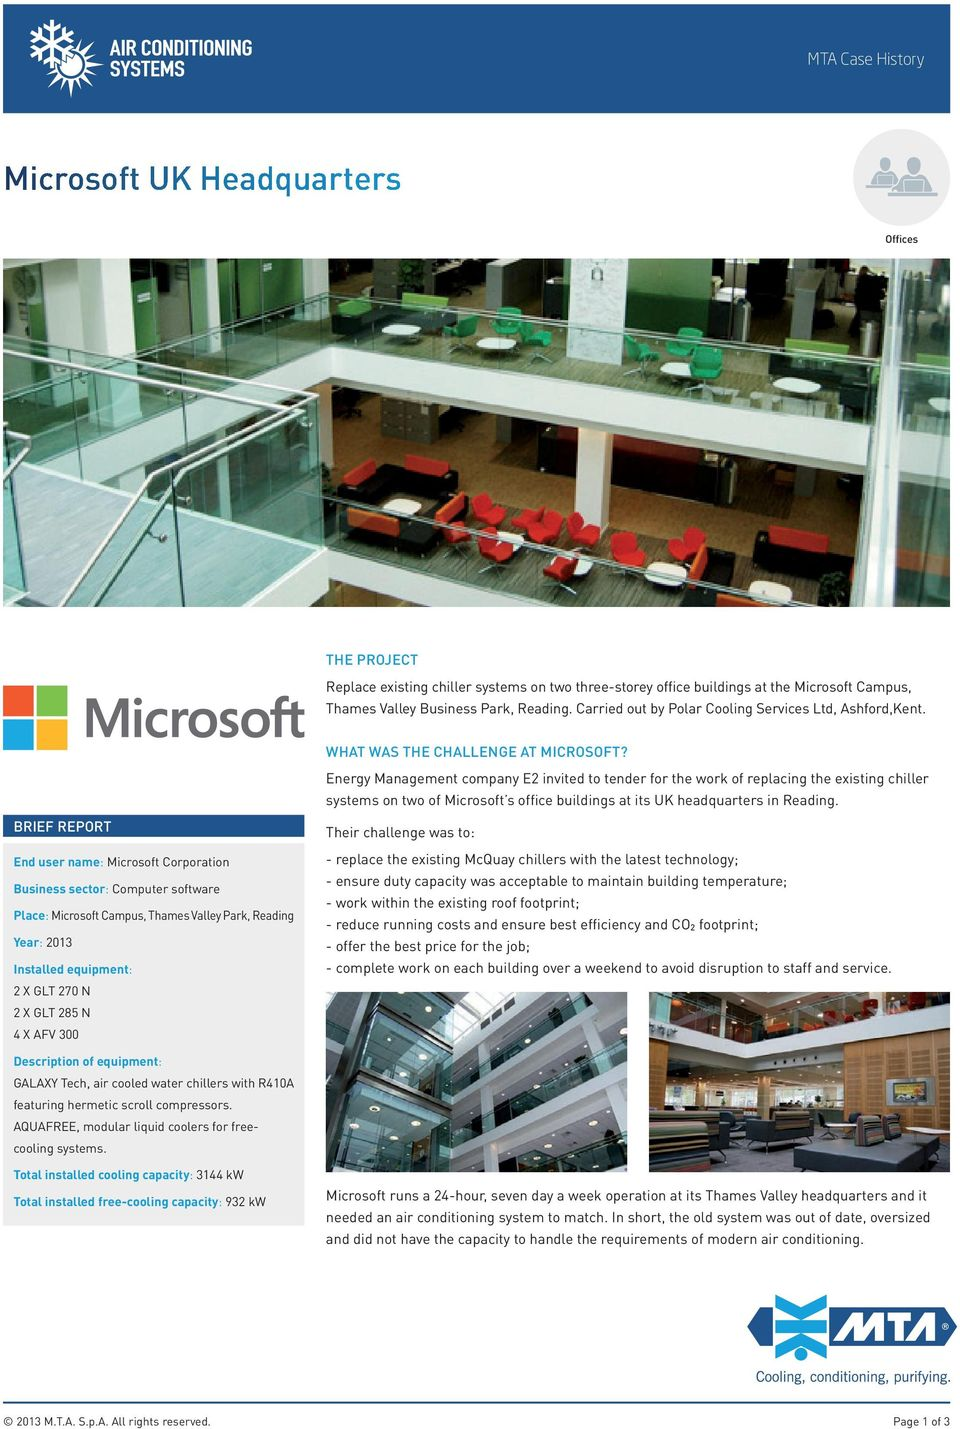 BRIEF REPORT End user name: Microsoft Corporation Business sector: Computer software Place: Microsoft Campus, Thames Valley Park, Reading Year: 2013 Installed equipment: 2 x GLT 270 N 2 x GLT 285 N 4